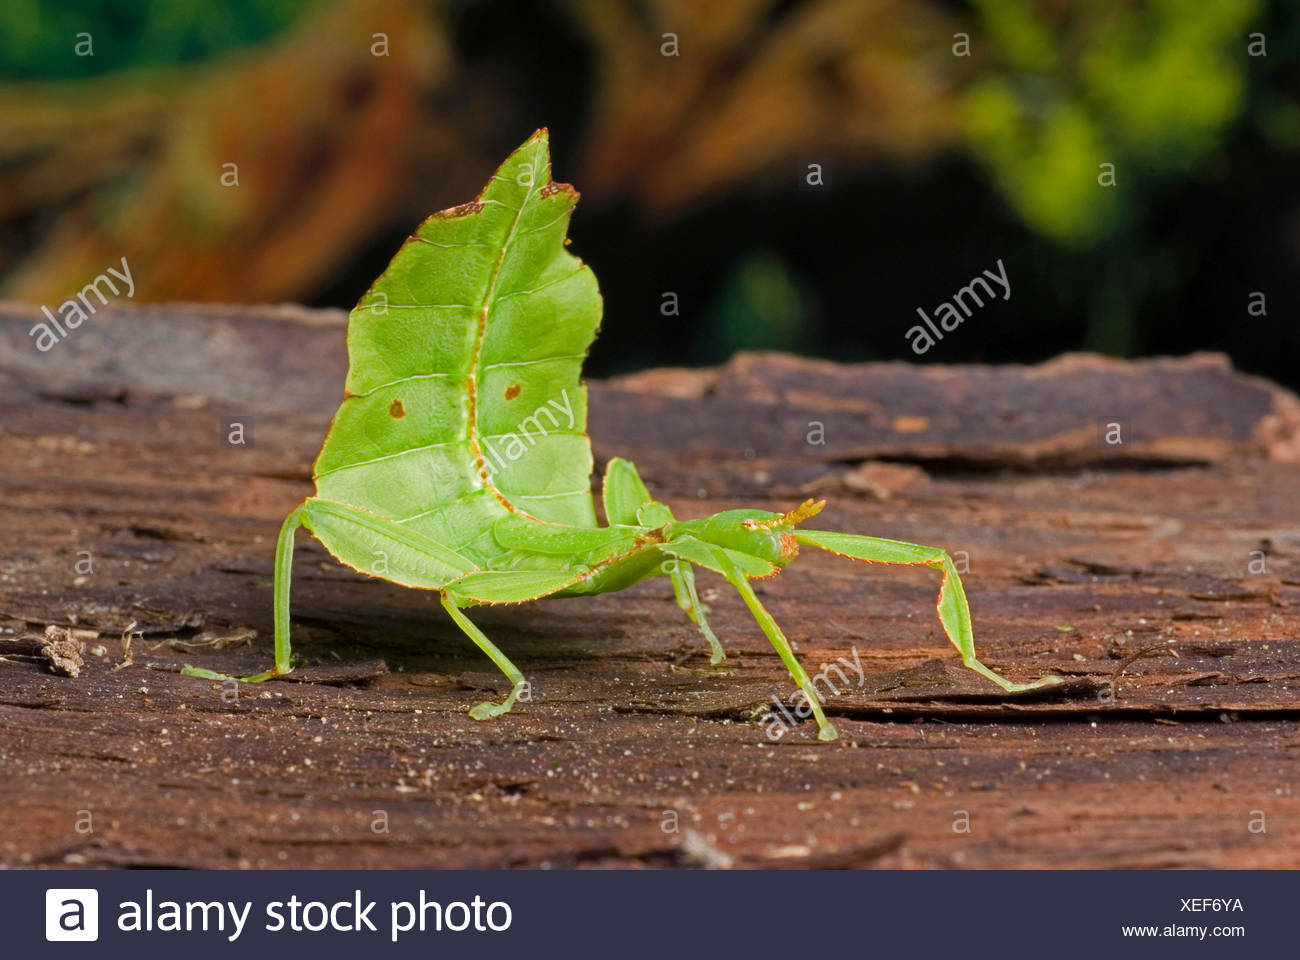 Leaf-Insect, leaf insect (Phyllium siccifolium), on bark - Stock Image